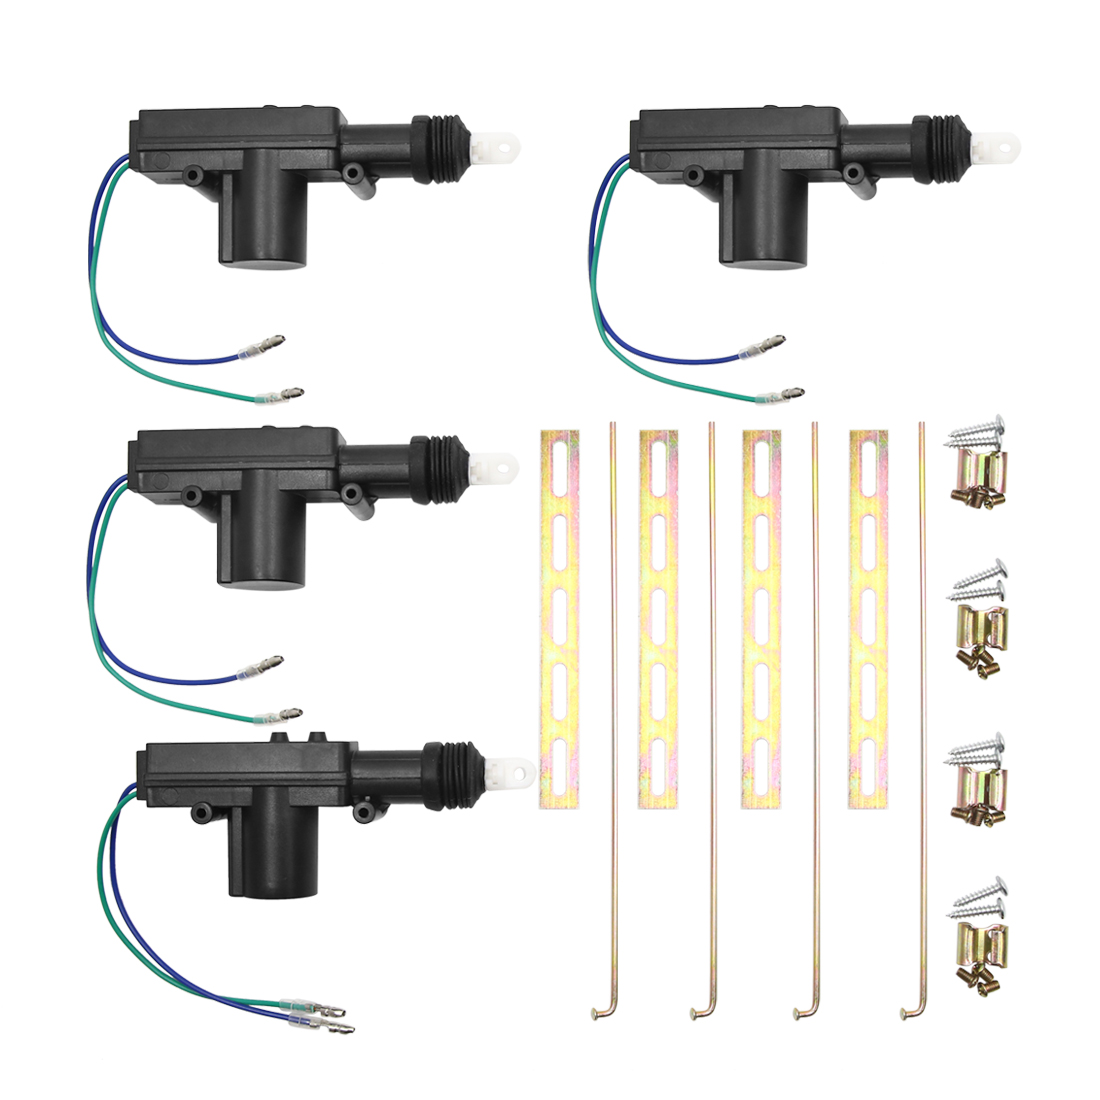 4pcs DC 12V Unviersal Car Central Locking System 2 Wire Power Door Lock Actuator